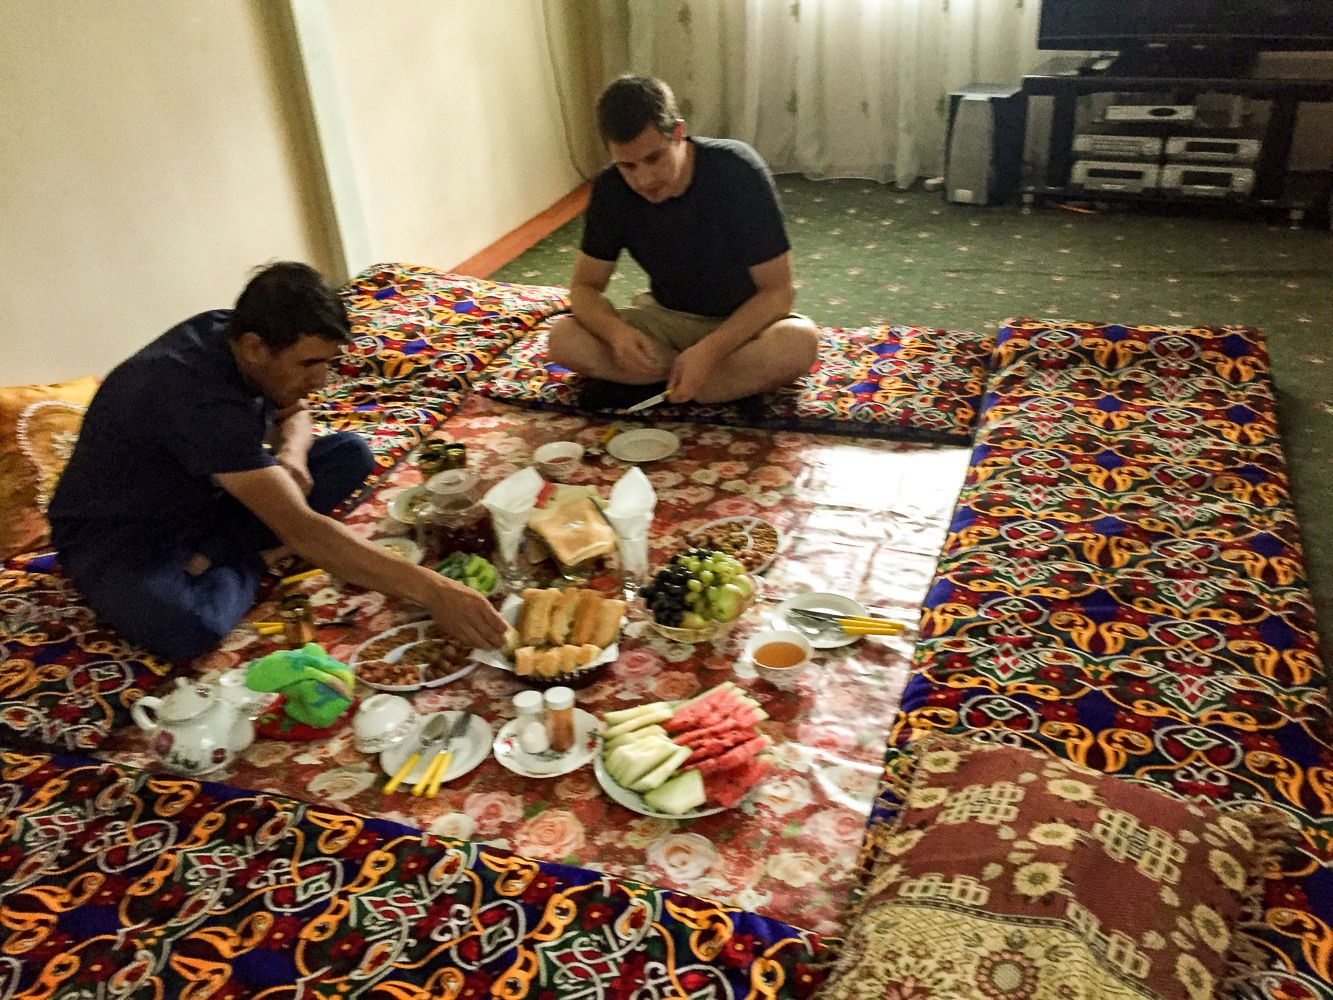 Tourists eating at dastarkhan in Central Asia